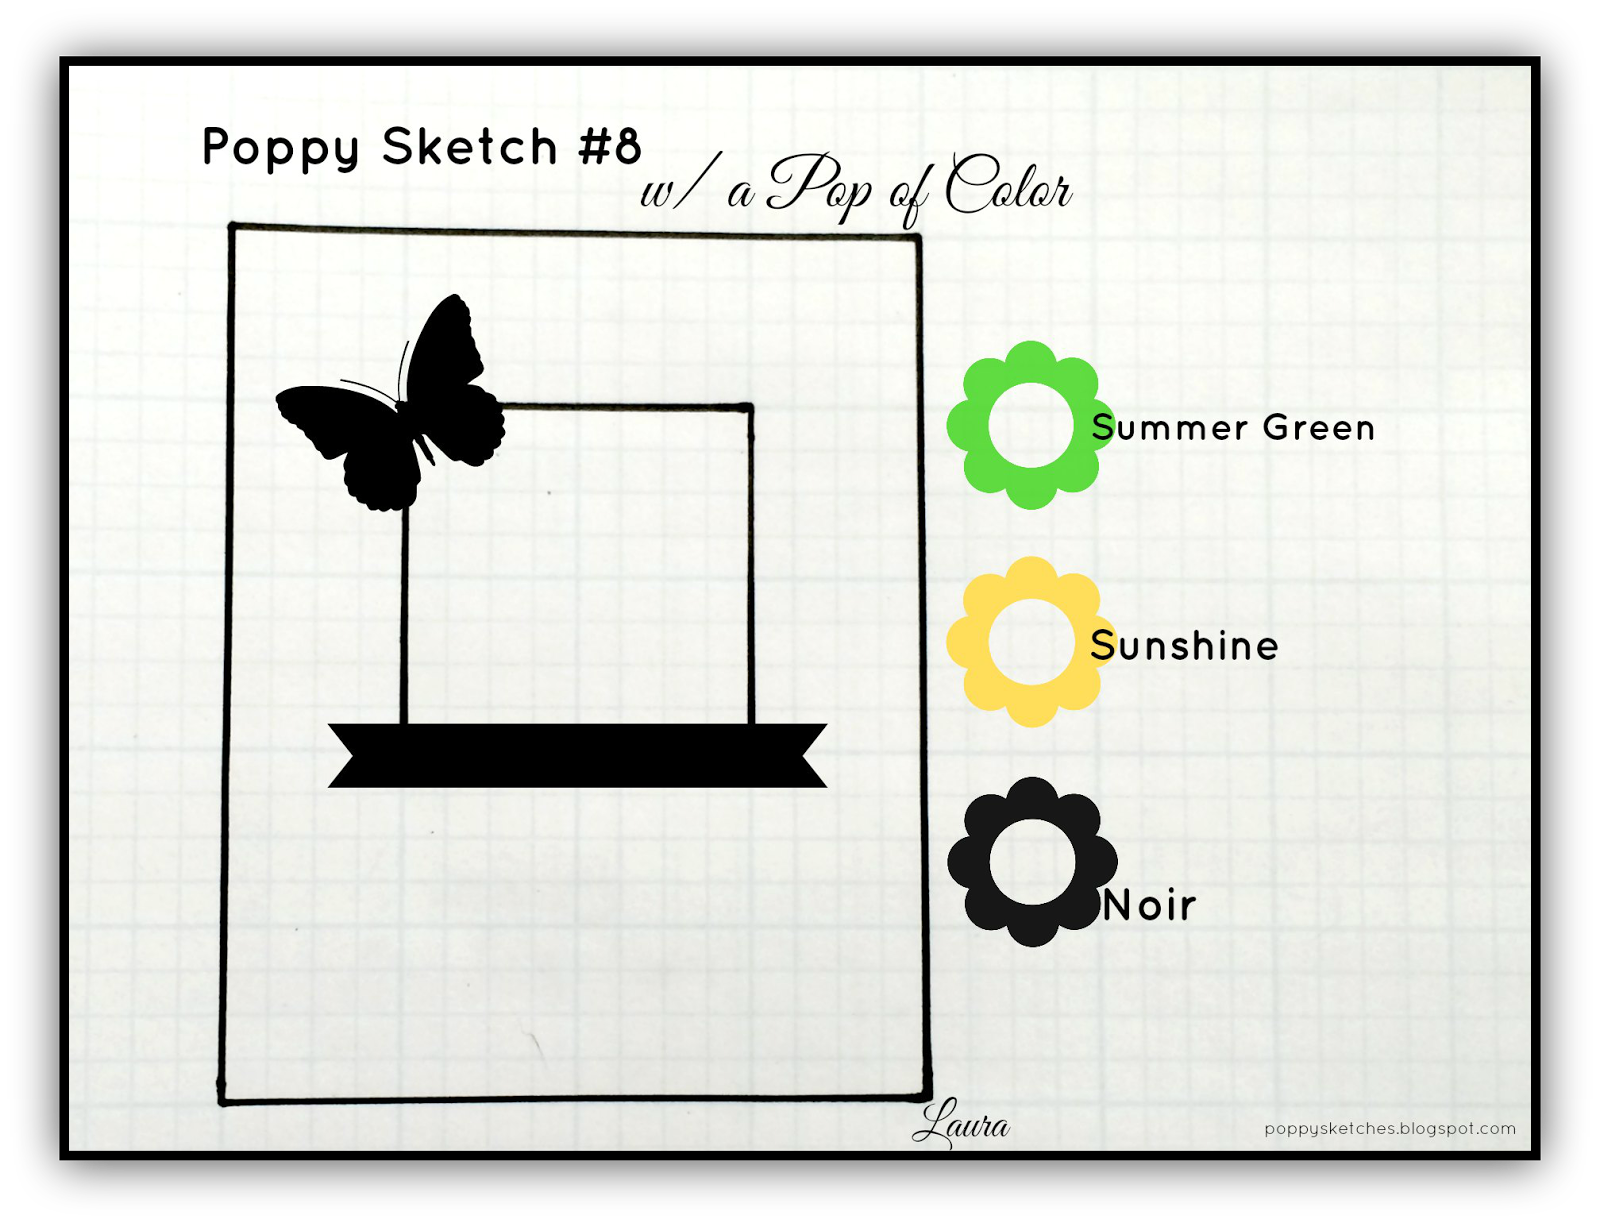 http://poppysketches.blogspot.com/2014/07/poppy-sketch-8.html